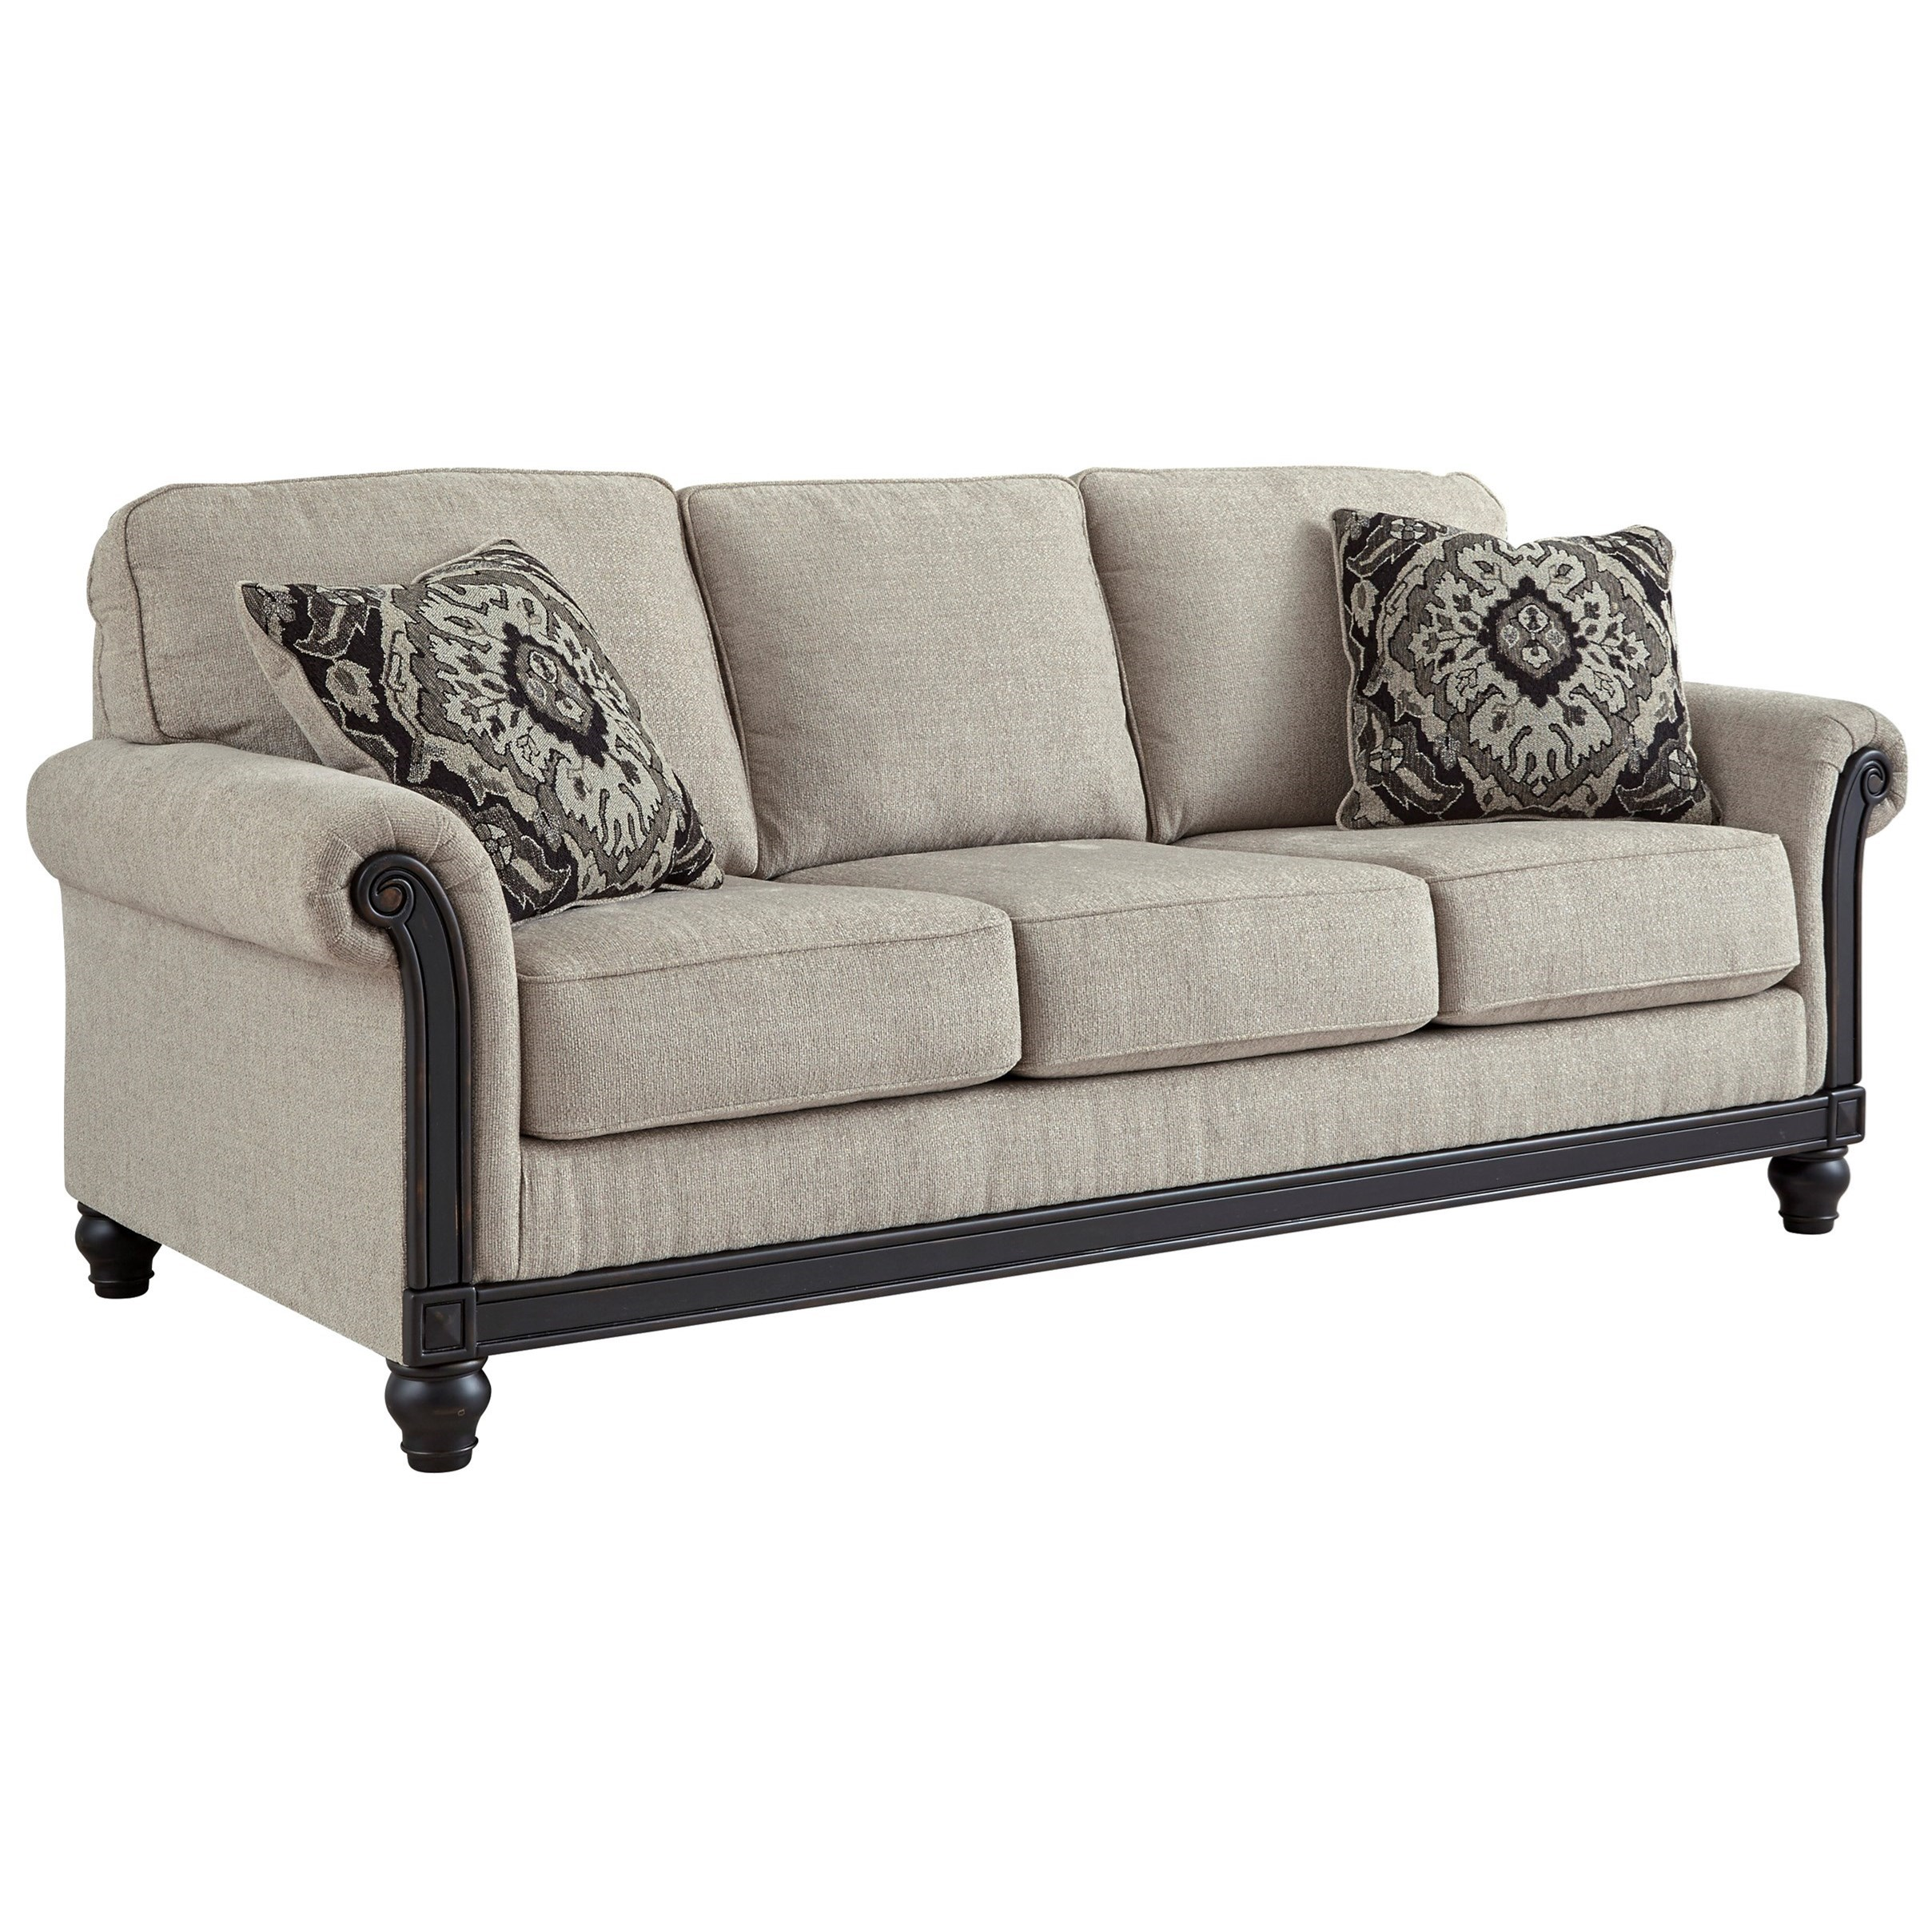 Signature Design By Ashley Benbrook Traditional Sofa With Turned Bun Feet | Lindy